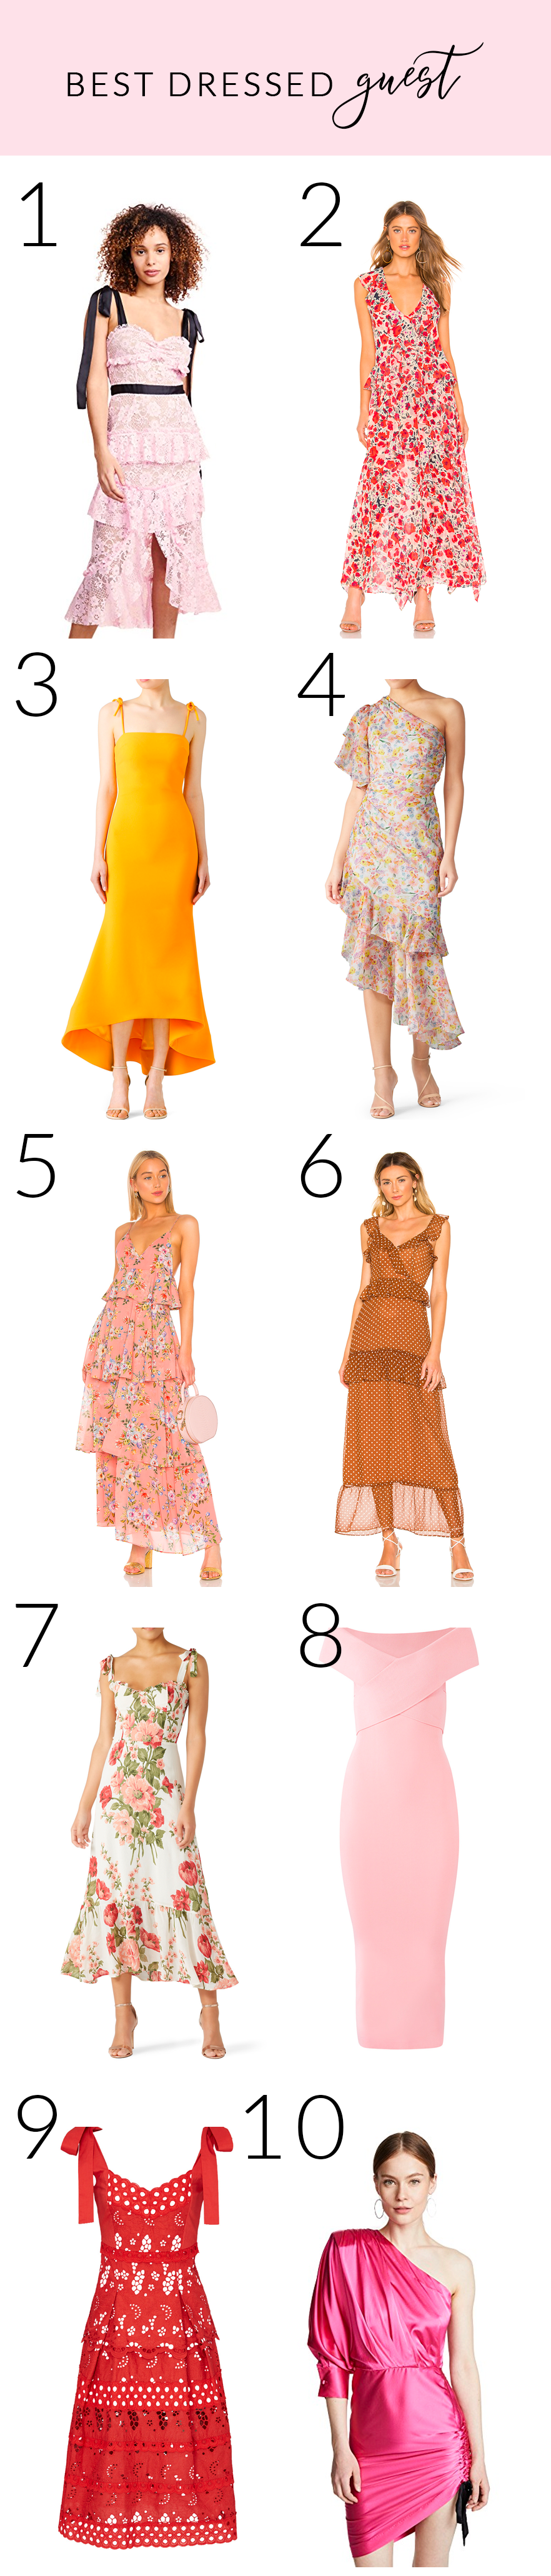 10 dresses - best dressed wedding guest